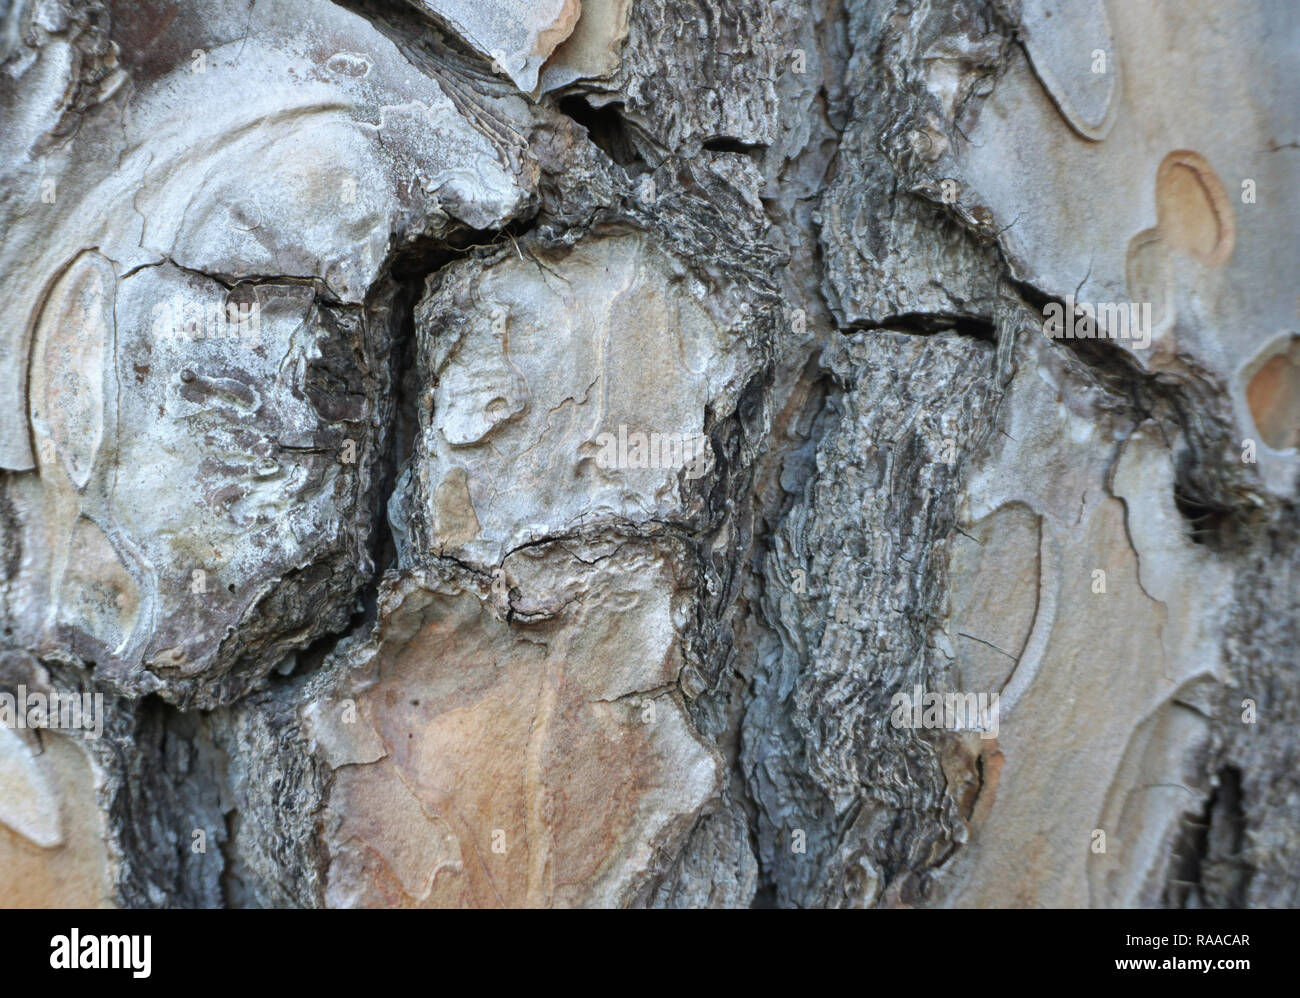 Old, cracked and rough tree rough skin close up view. Embossed wood bark texture background - Stock Image